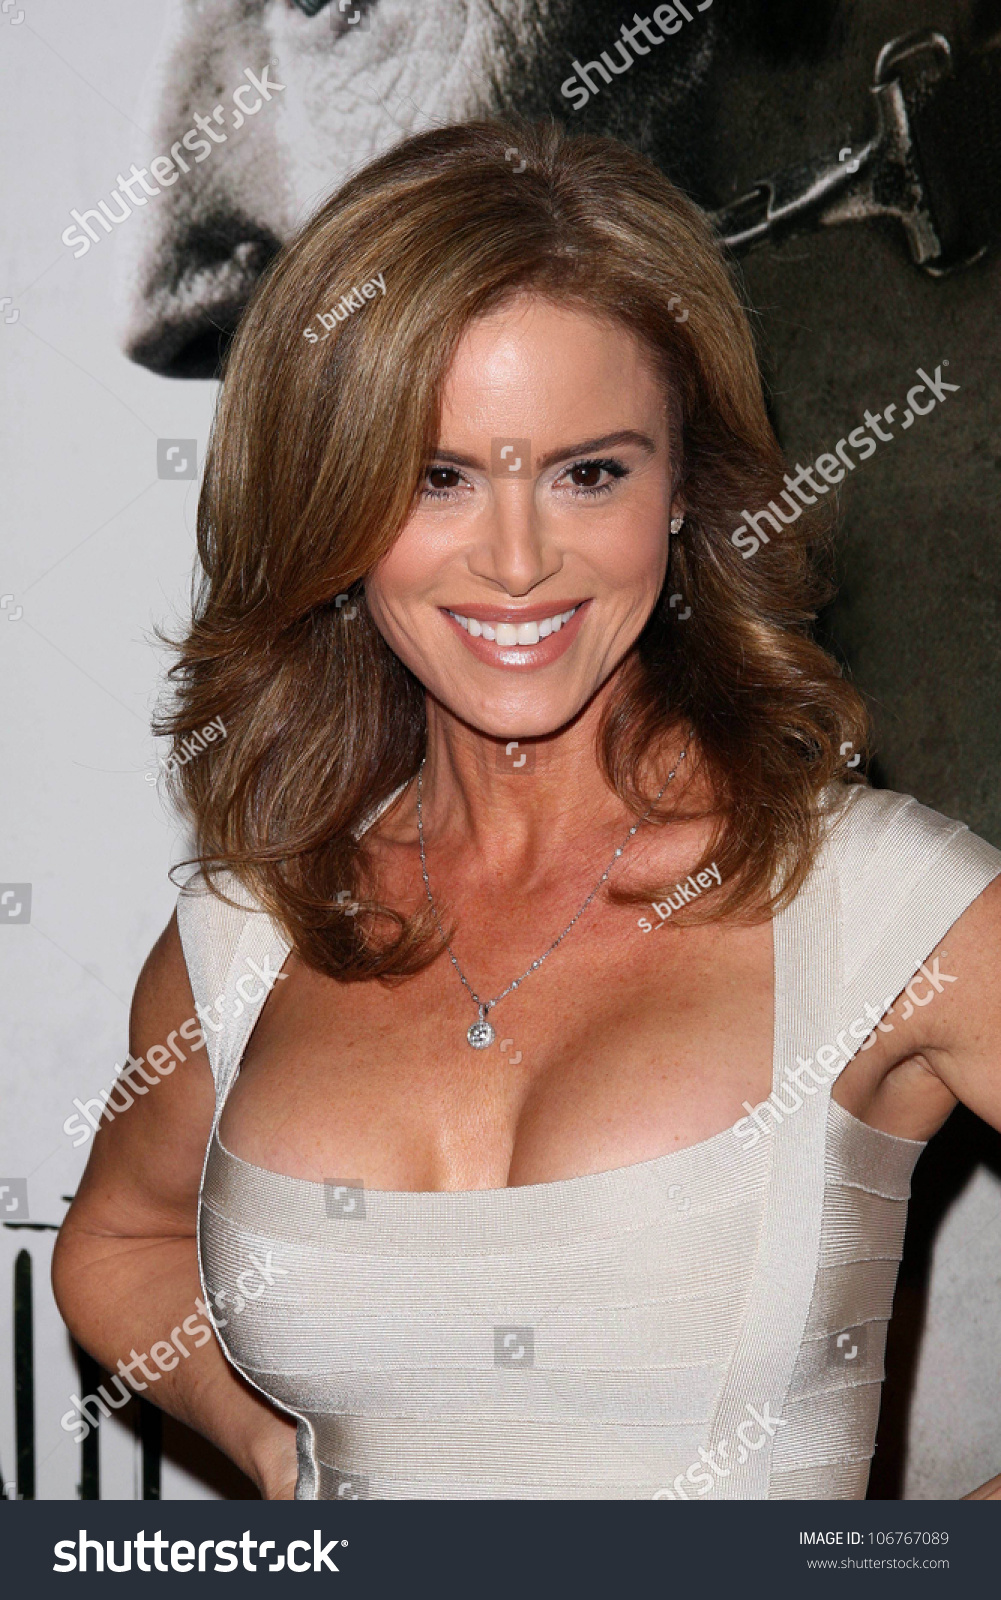 Instagram Betsy Russell nudes (59 photo), Topless, Paparazzi, Twitter, cleavage 2018